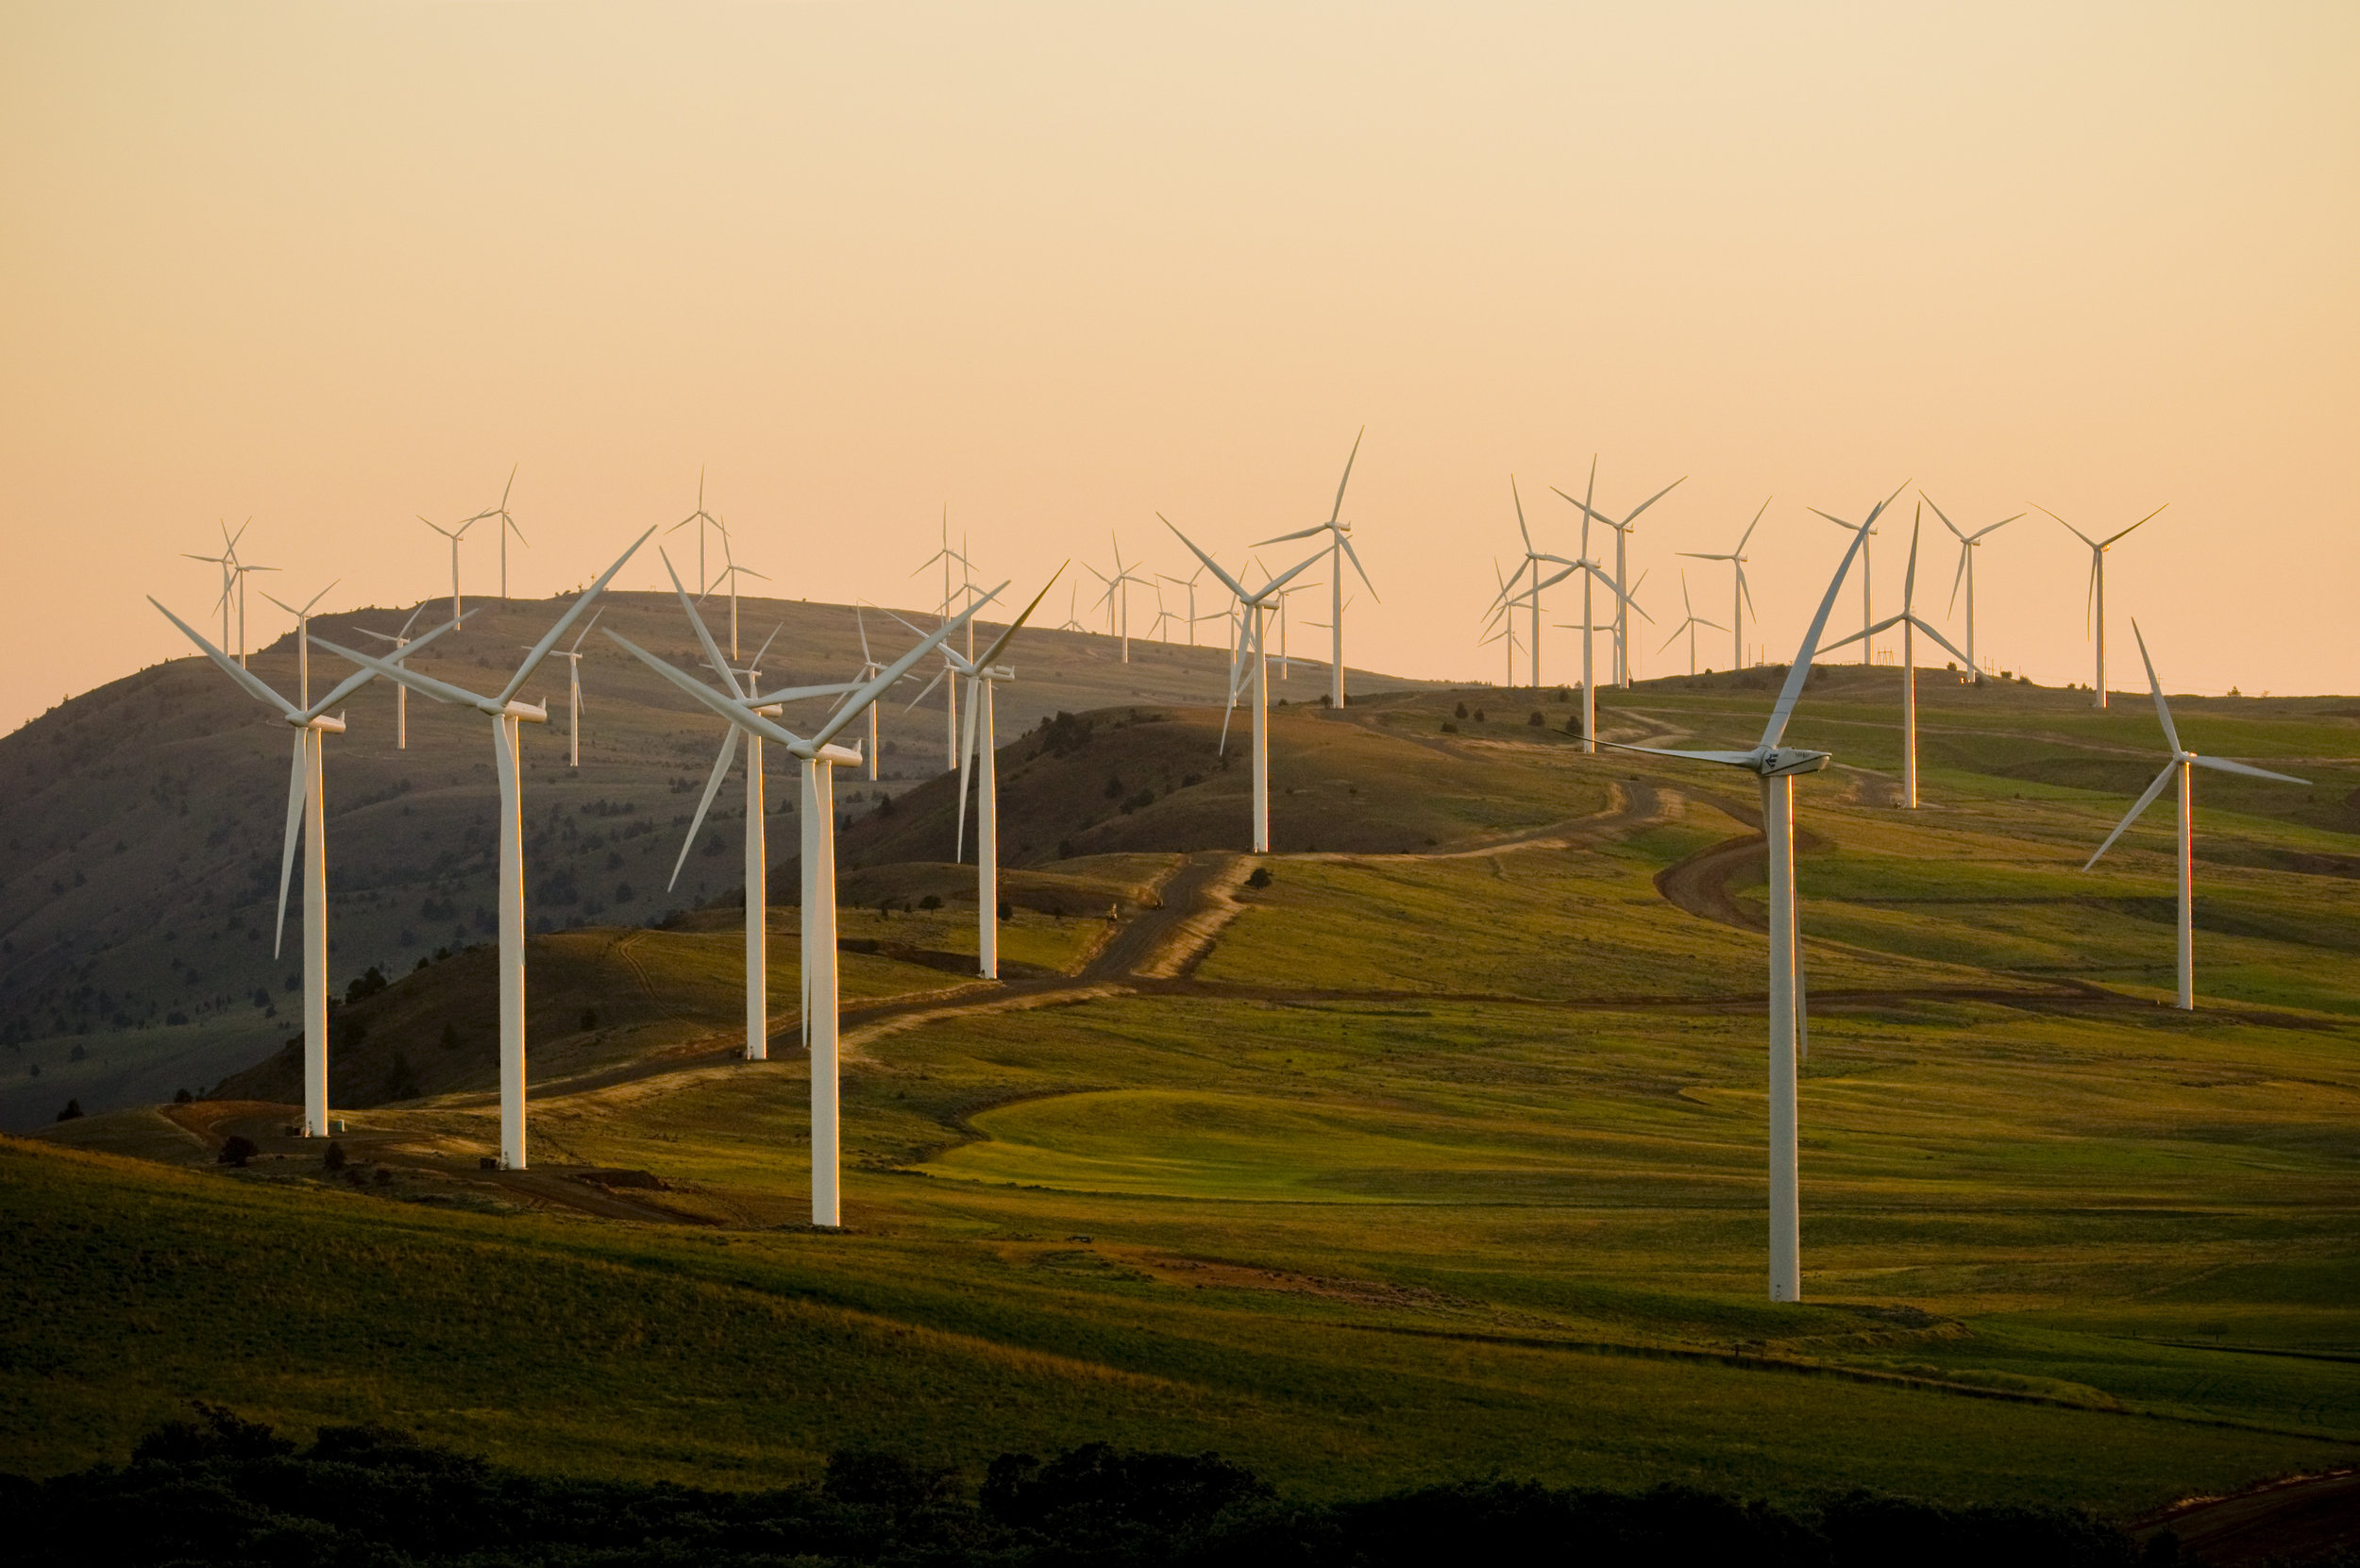 UK power generation hits record low, renewables at record high -